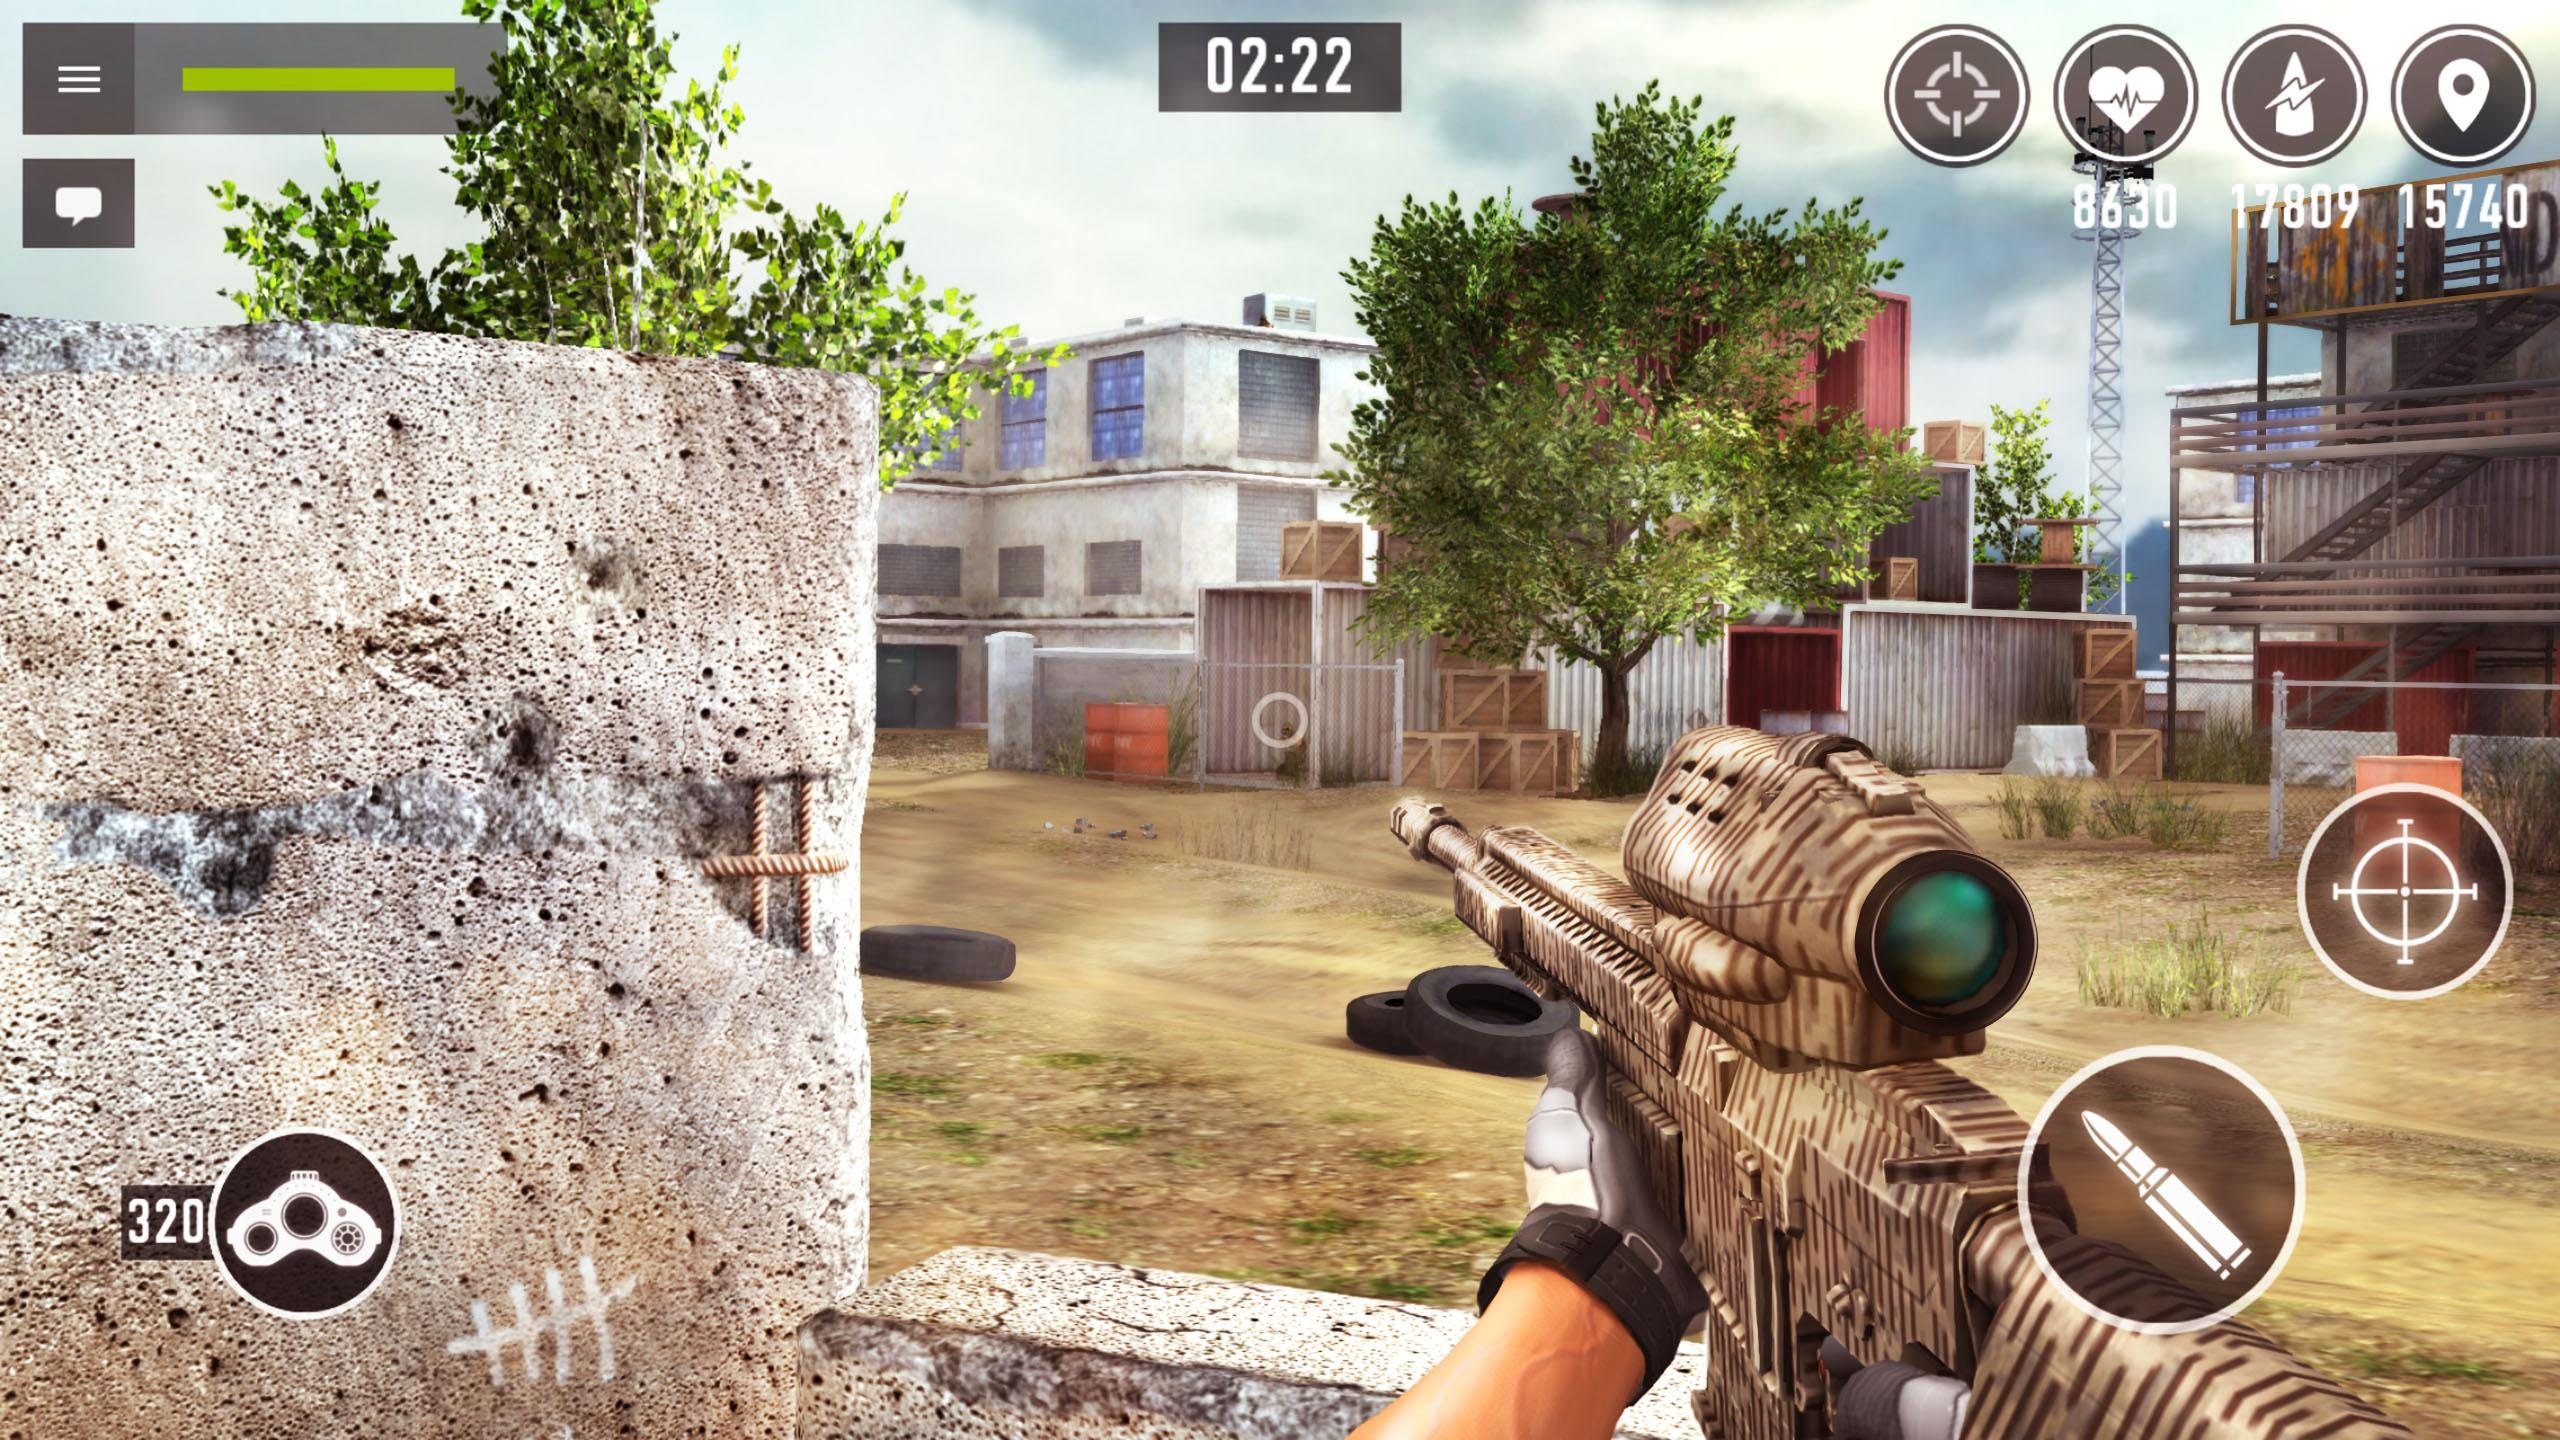 Sniper Arena PvP Army Shooter 1.2.8 Screenshot 10